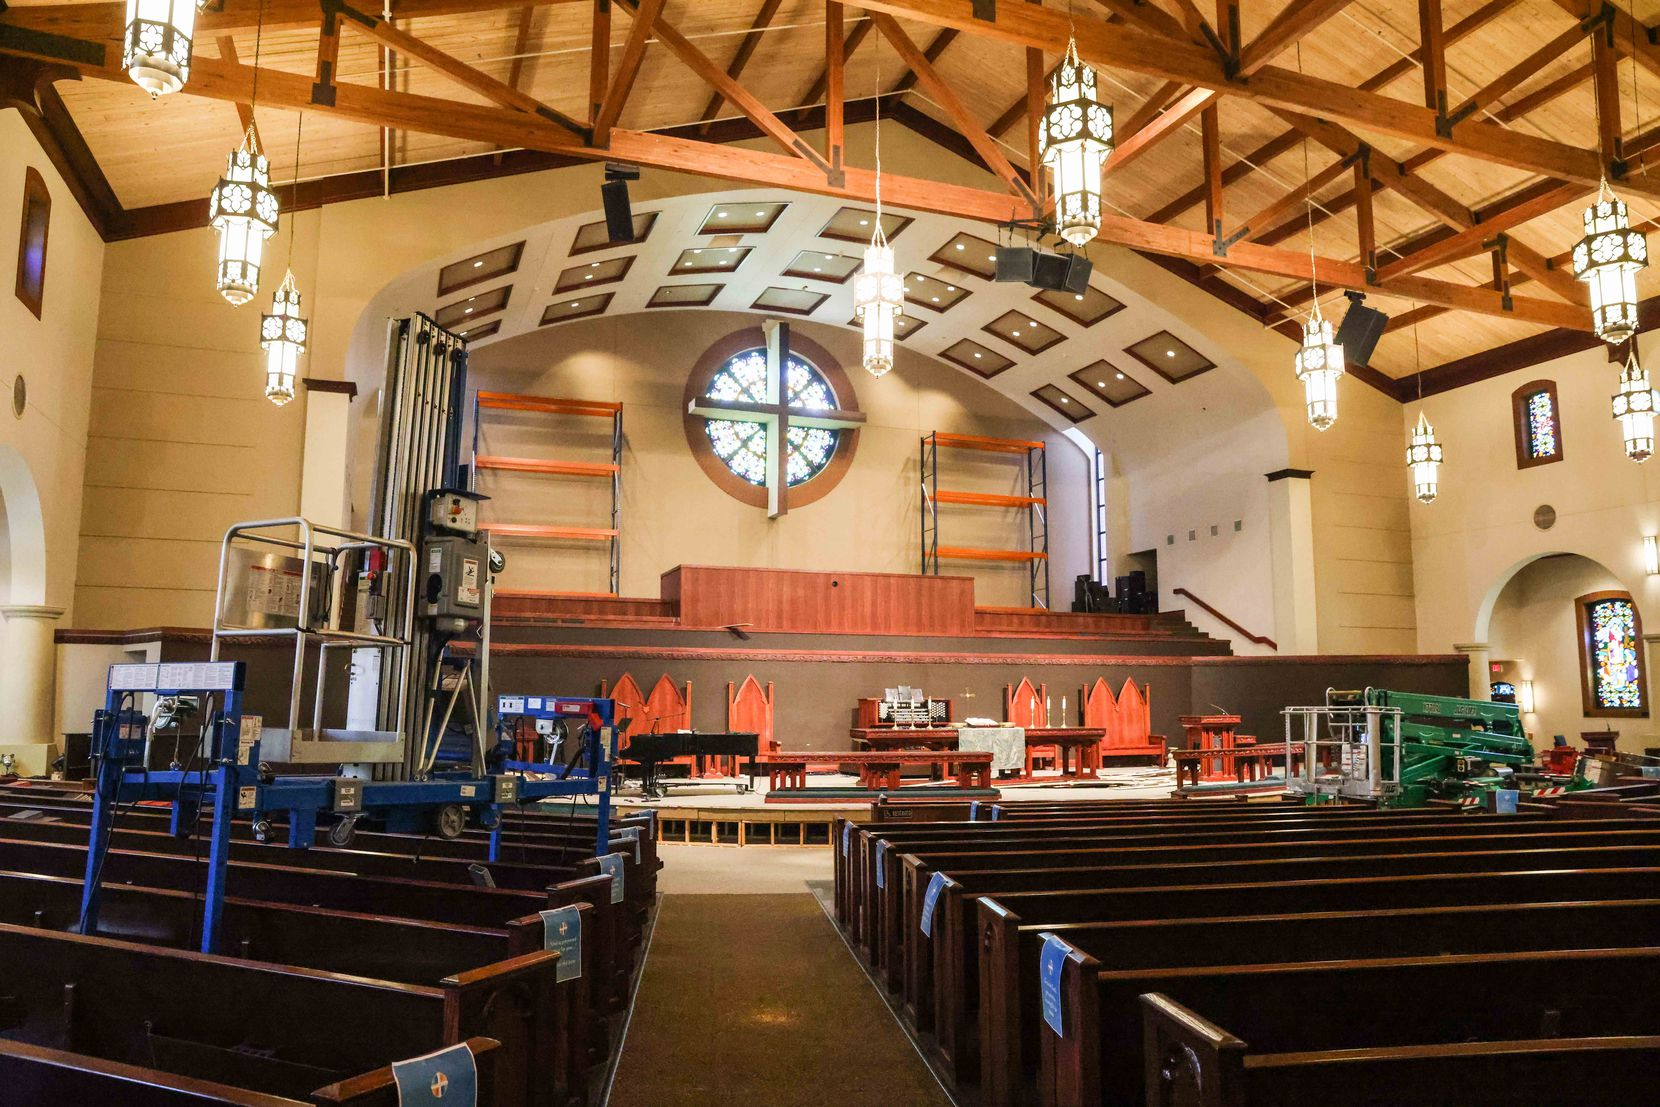 First United Methodist Church flooded in February after a pipe burst during the winter storm, and members have been using an alternate location for services since then. The church is having outdoor services at The Sound at Cypress Waters to celebrate Easter in Coppell.